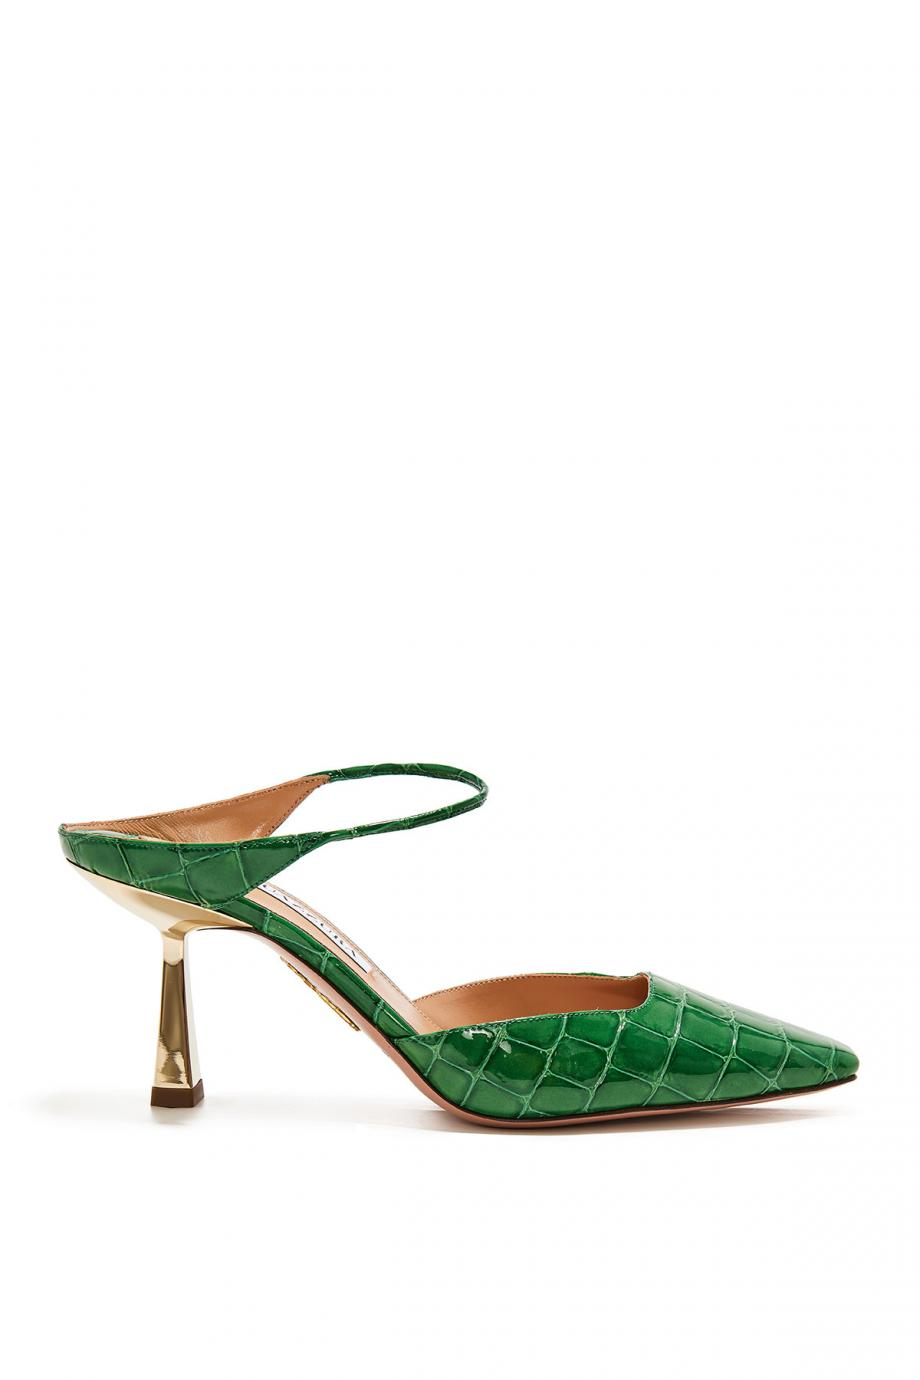 Iconic croc-leather mules